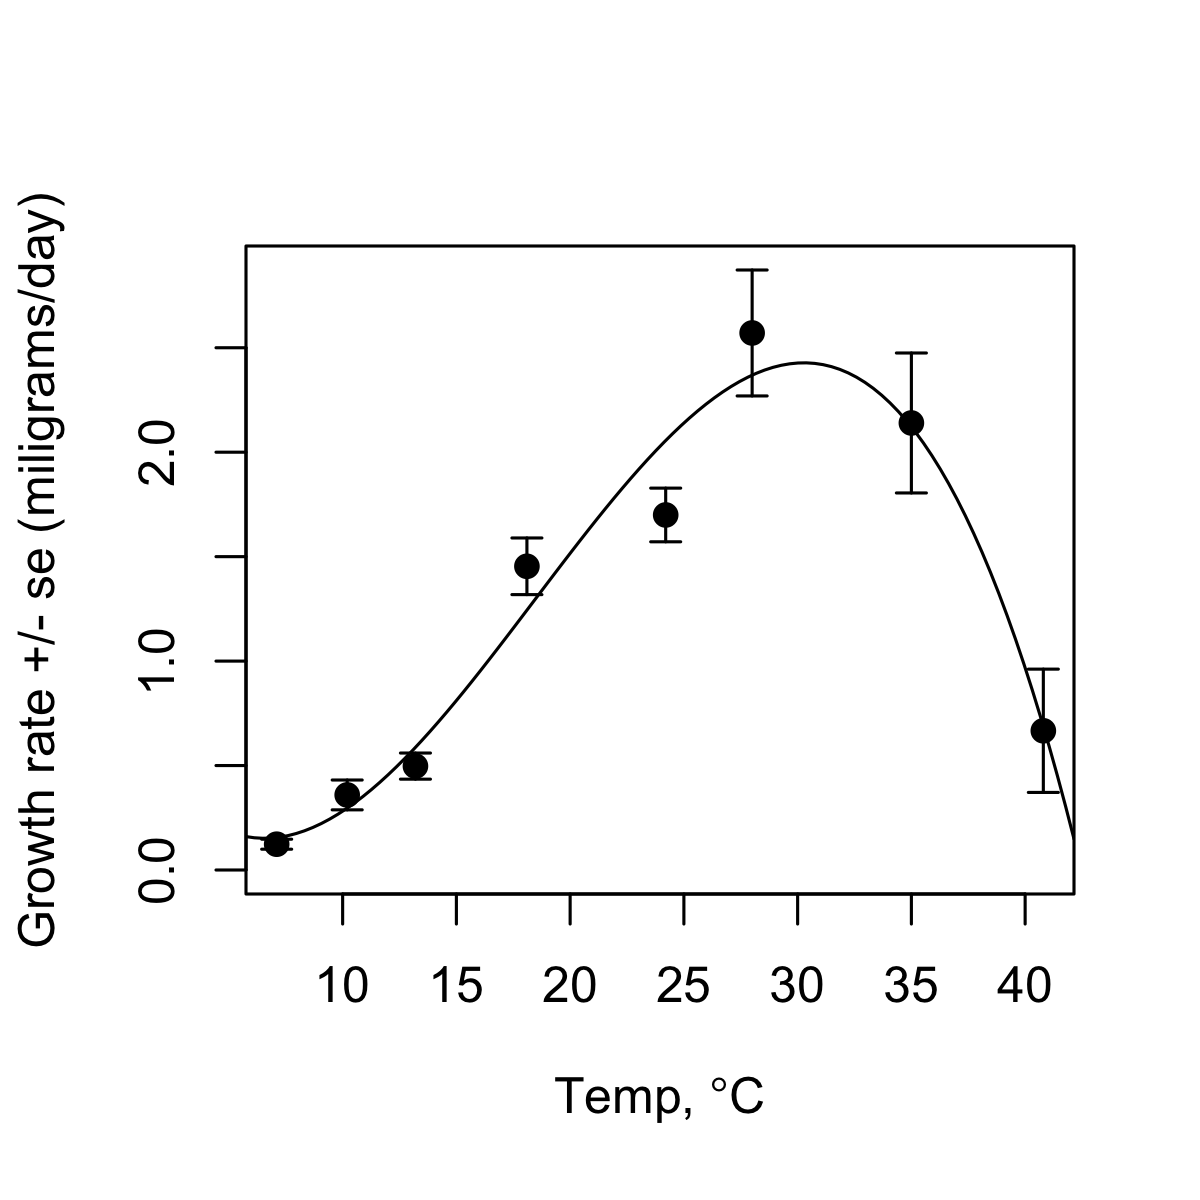 Modelling cranberry fruitworm development as a function of temperature